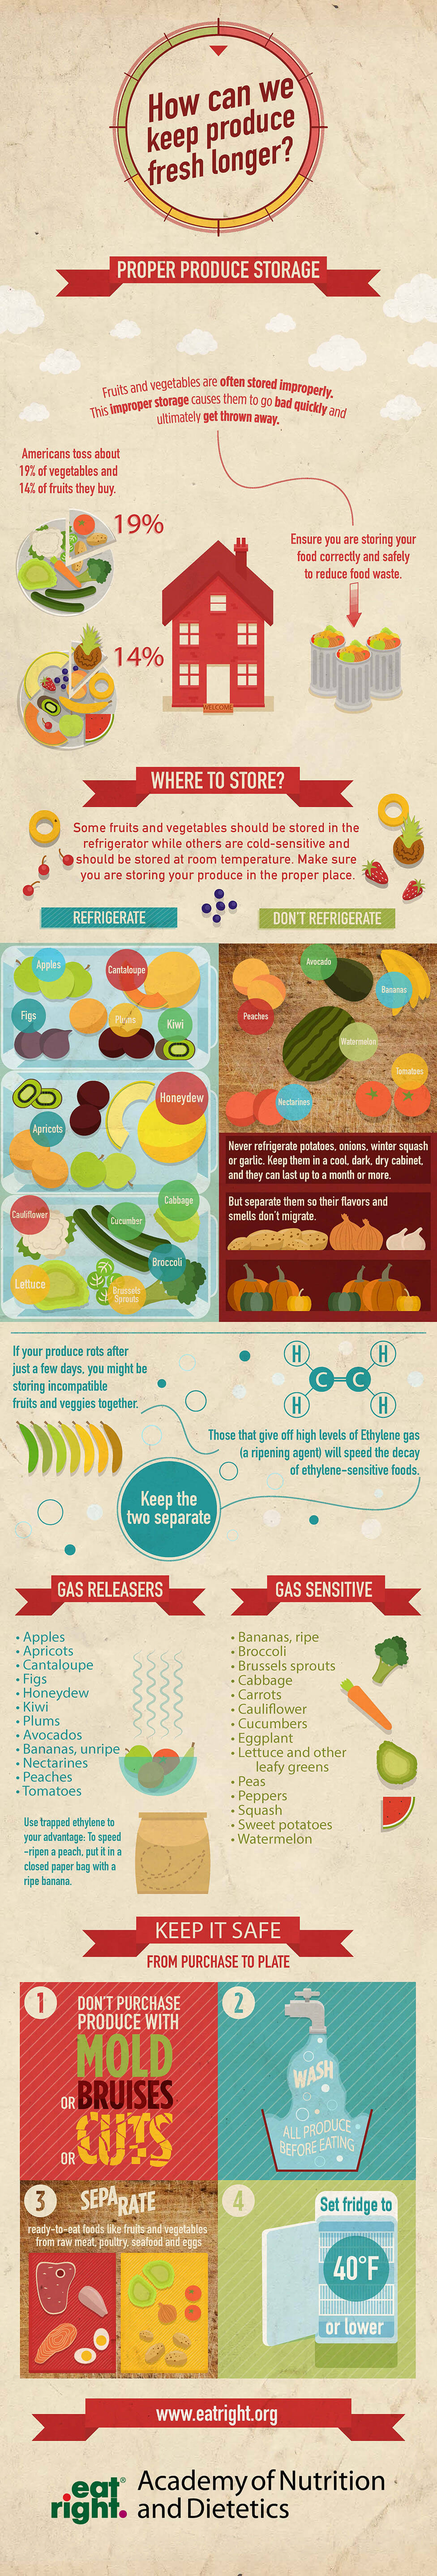 how to keep produce fresh for longer infographic